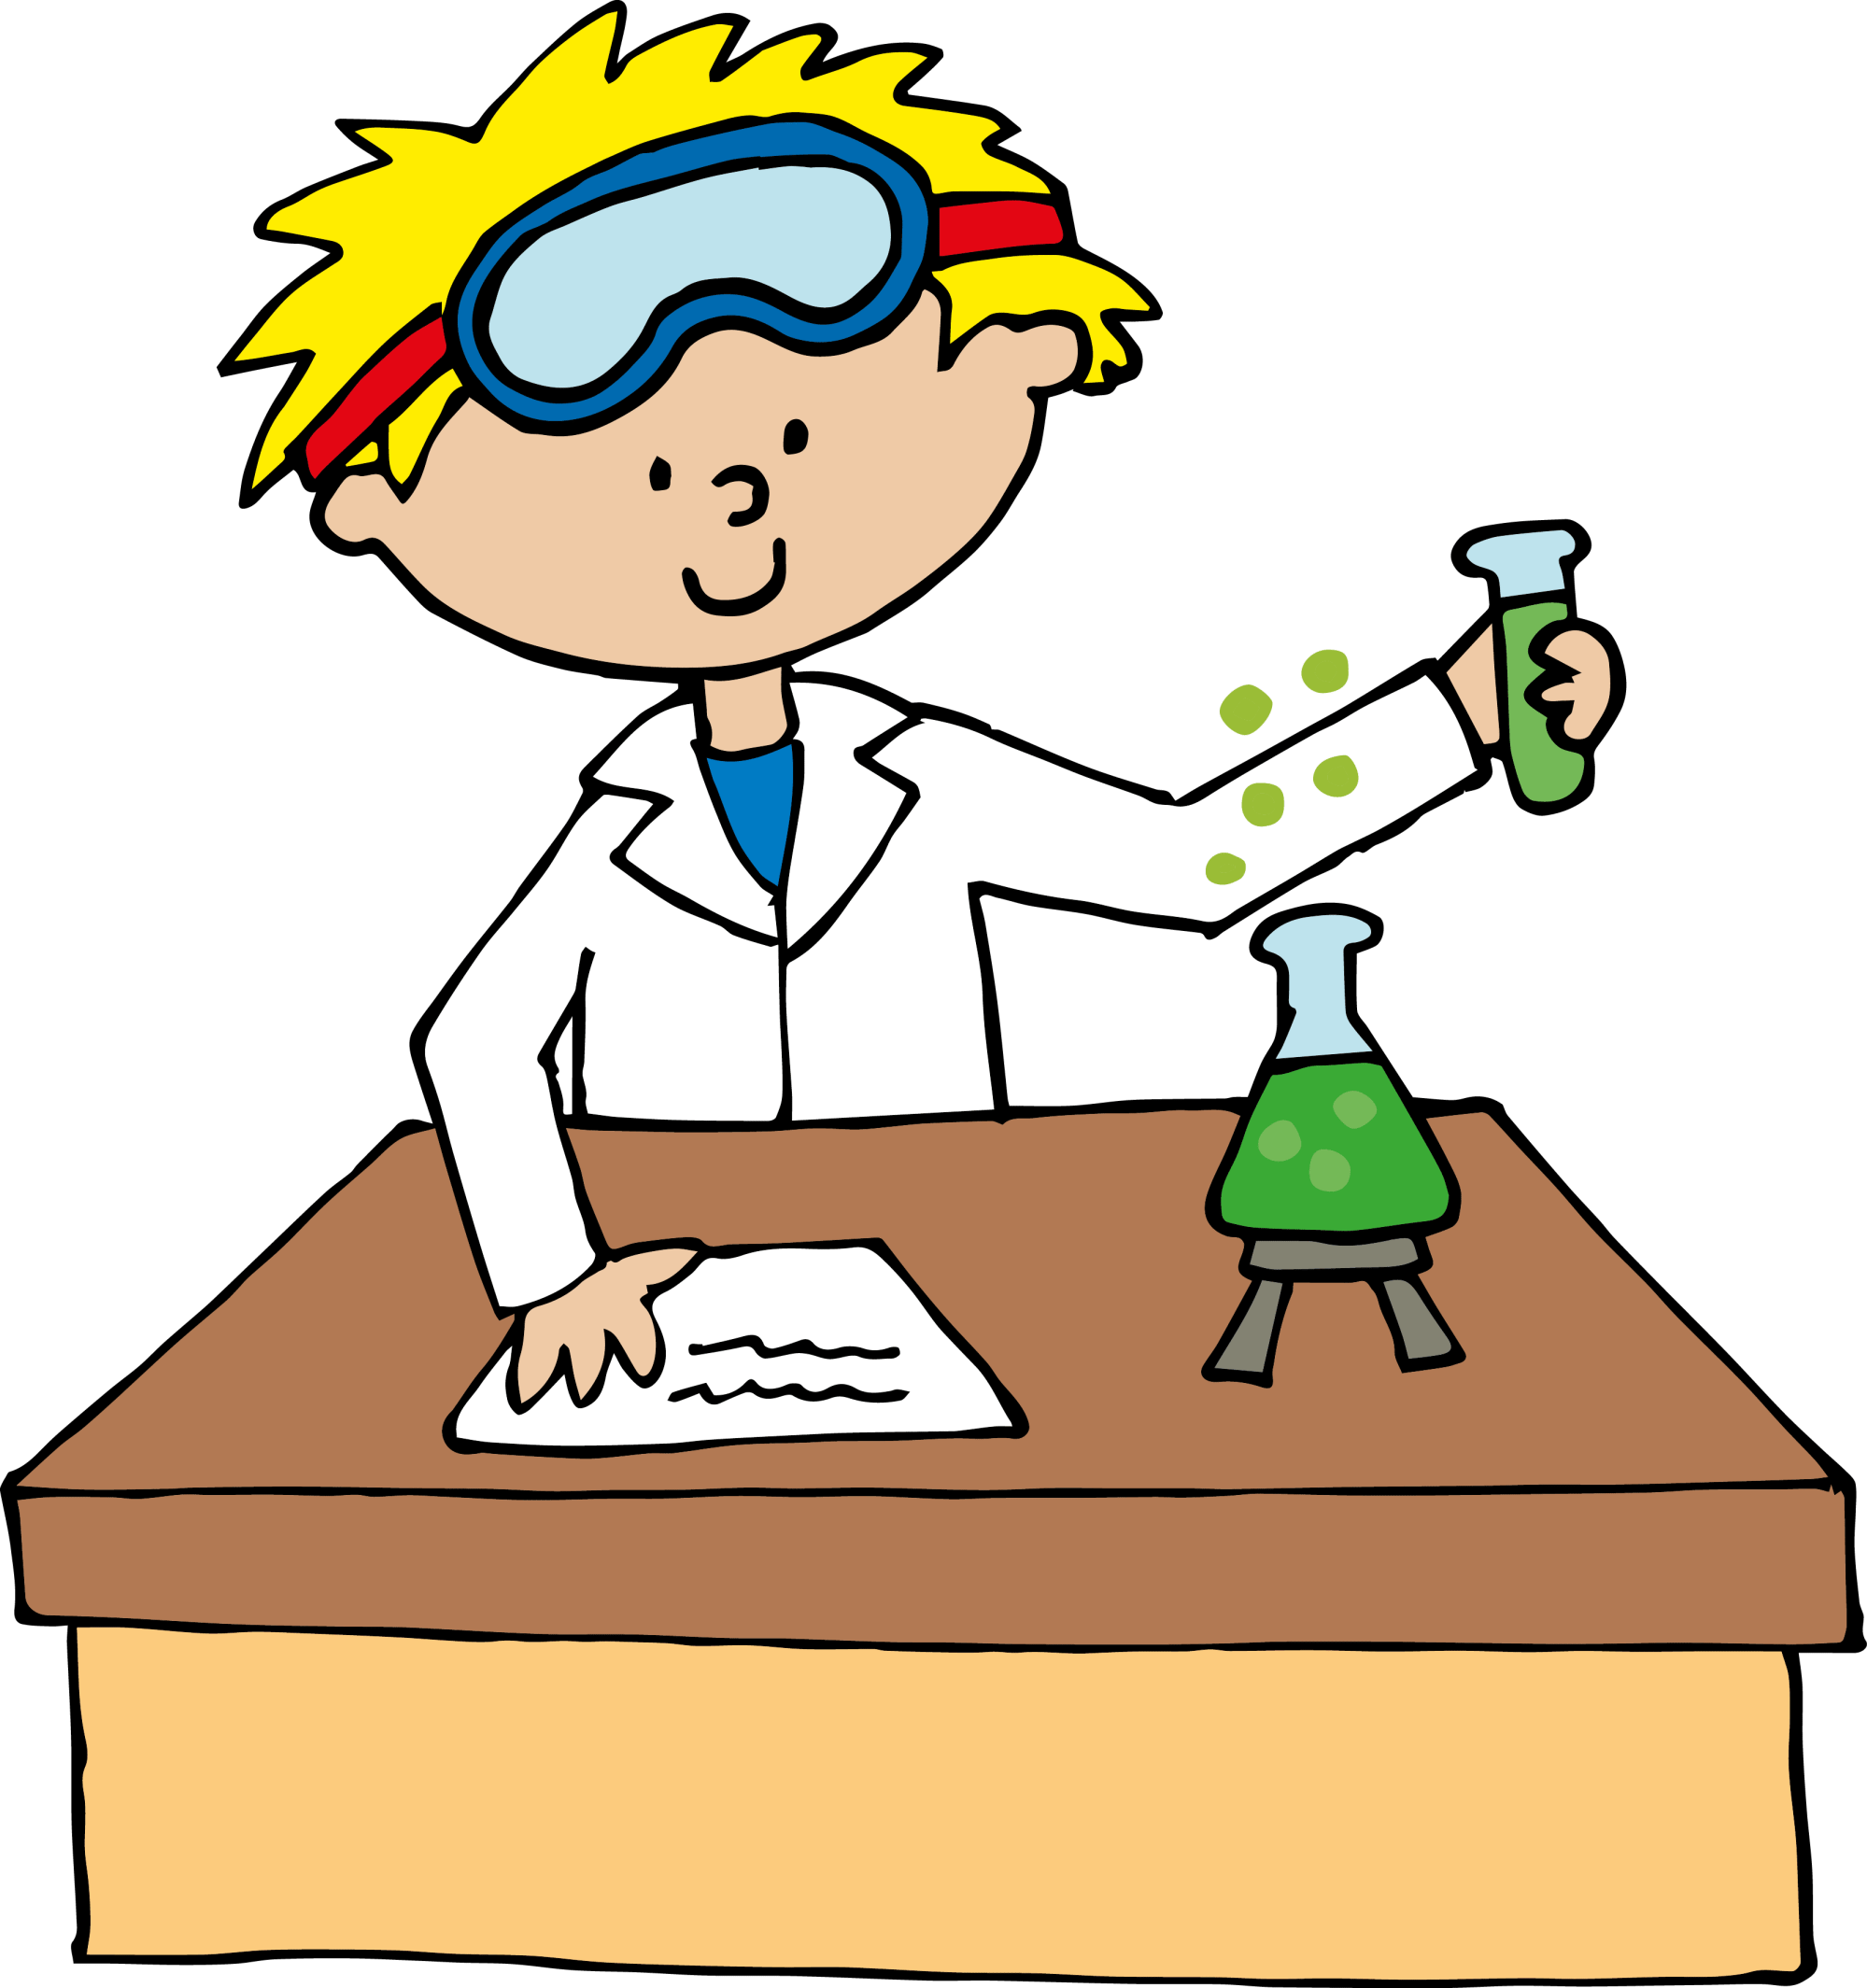 hight resolution of clip art school science clipart